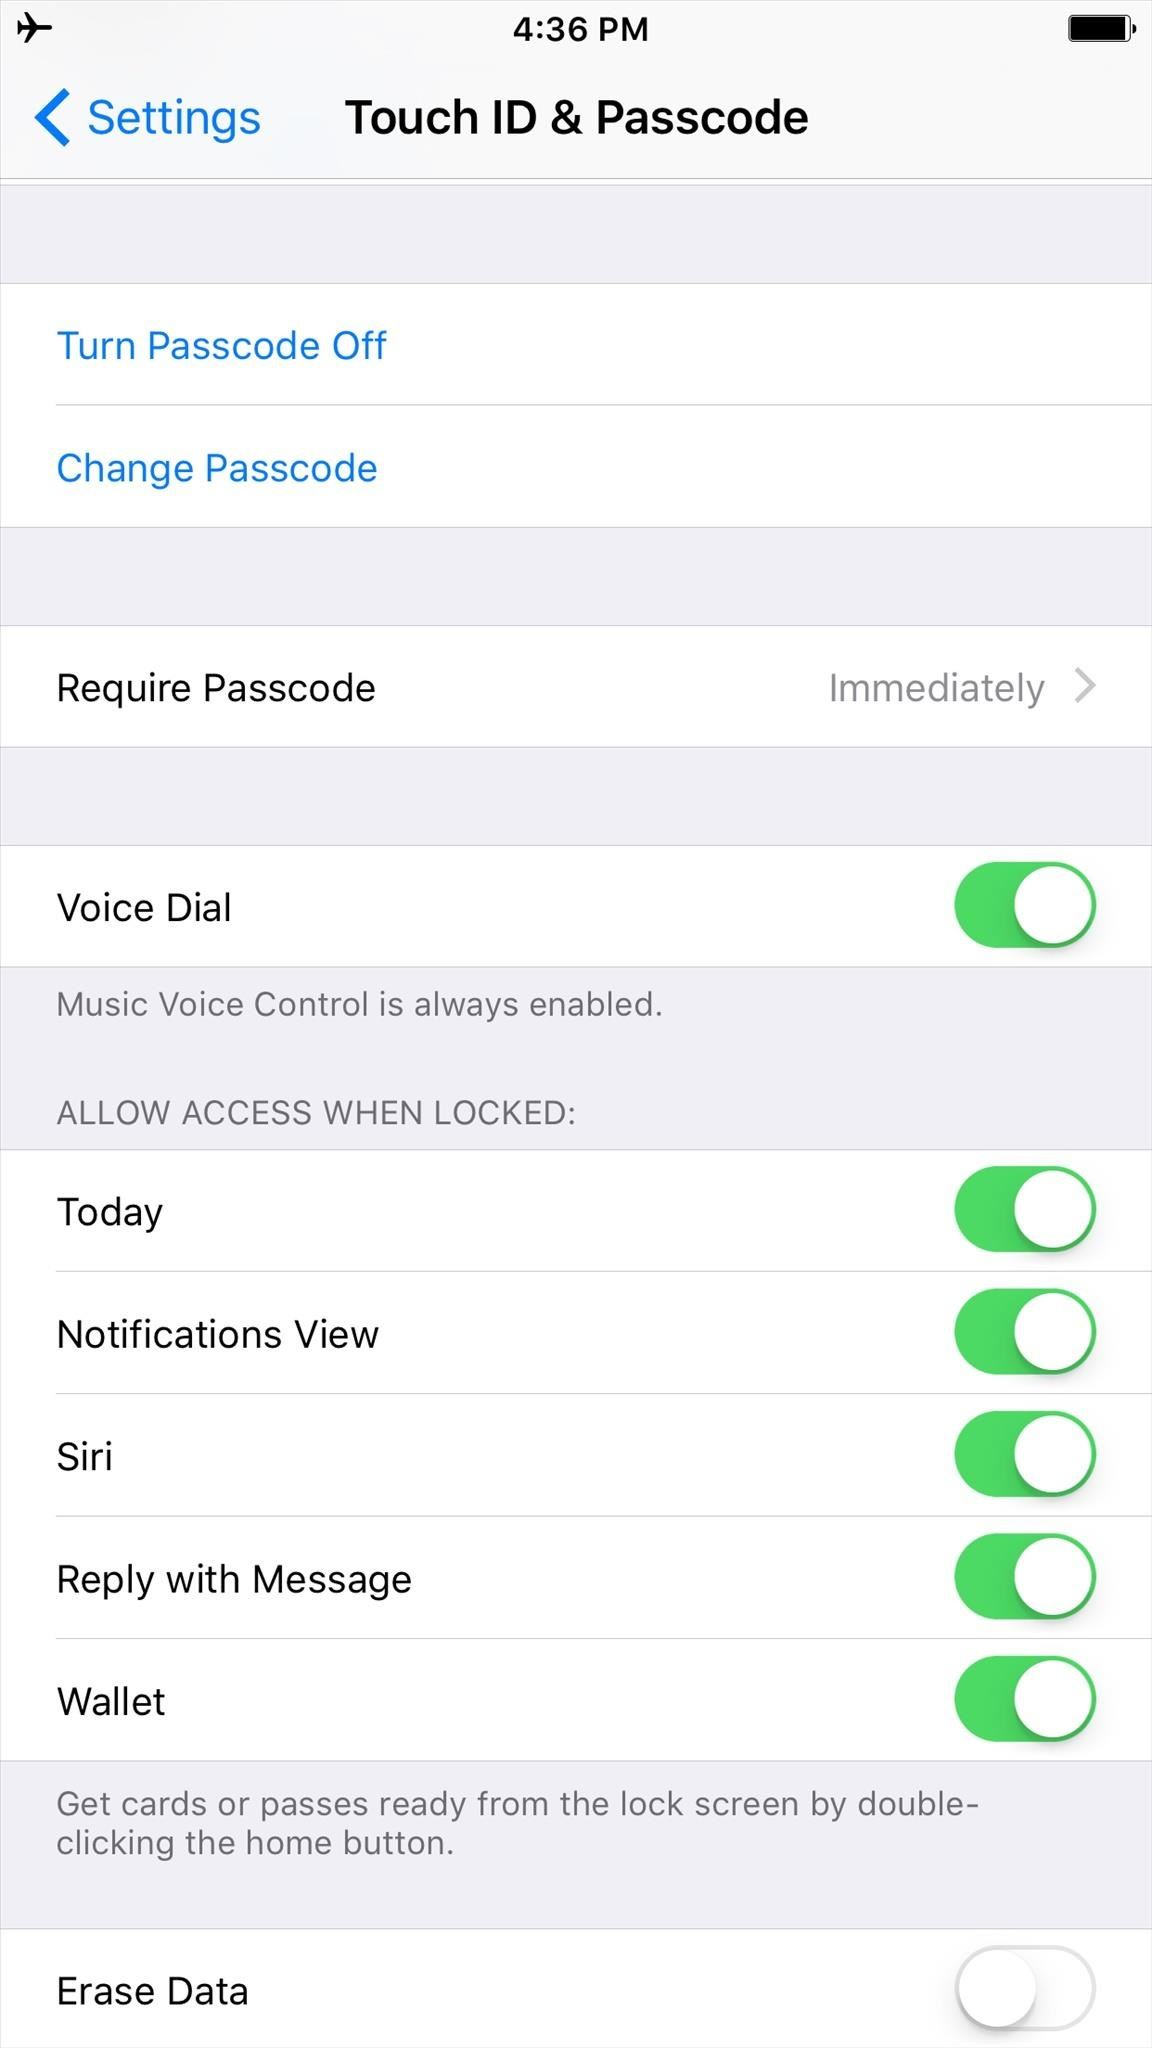 Once In, Scroll Down And Toggle Off Siri Under Allow Access When Locked  (this Will Also Disable Voice Dial Controls)